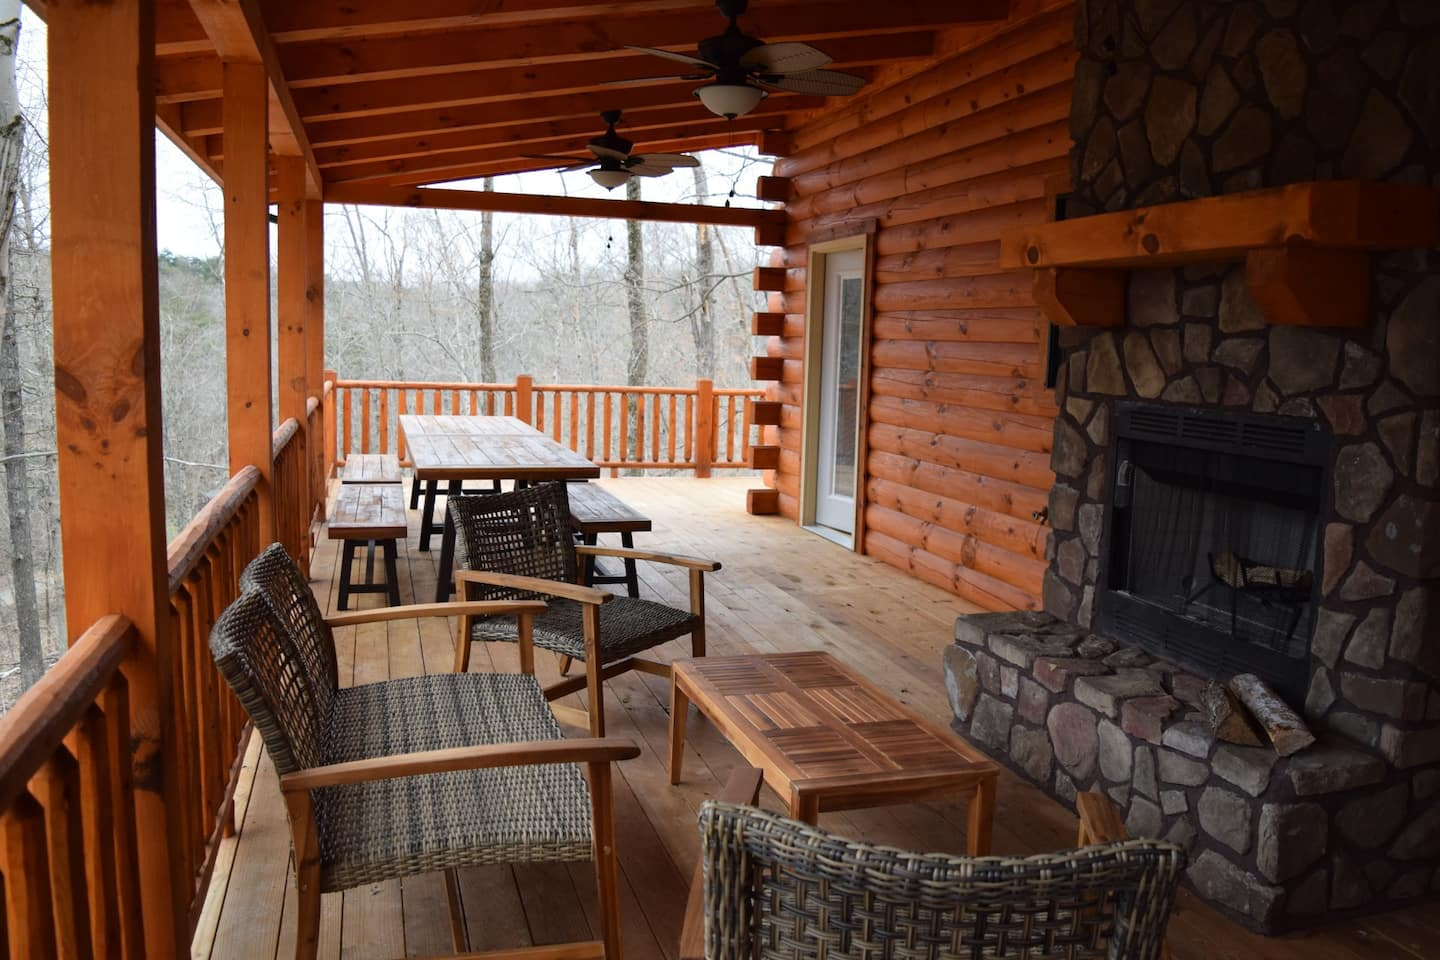 Luxury Cabins in Ohio with outdoor fireplace and hot tub